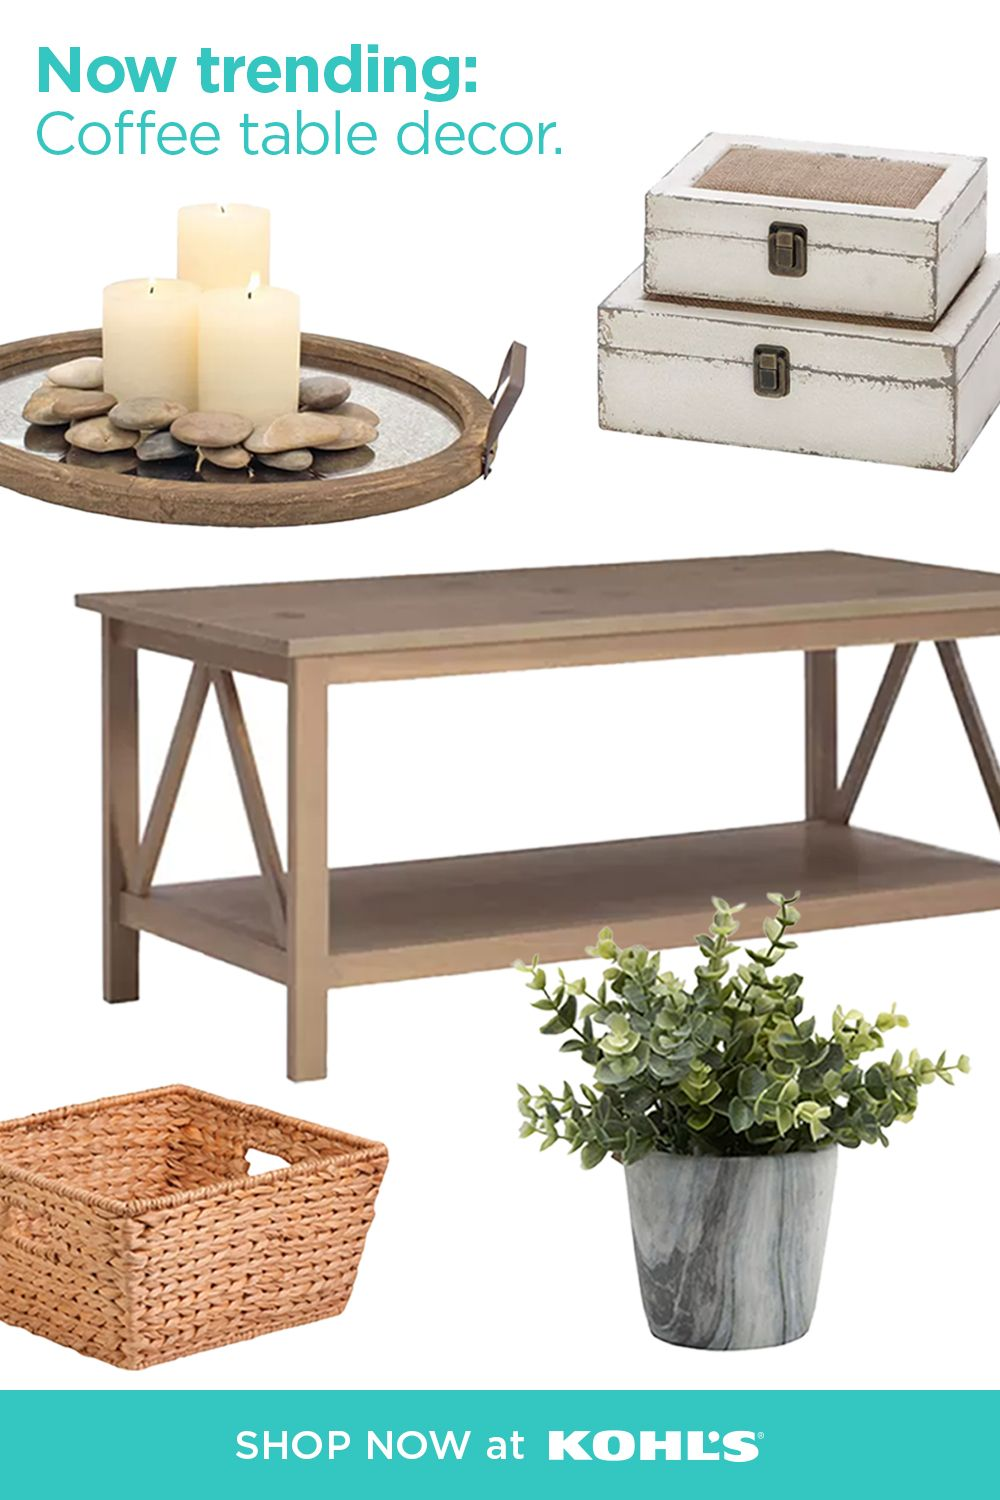 Find Stylish Coffee Table Must Haves At Kohl S Decor Modern Southwest Decor Home Decor [ 1500 x 1000 Pixel ]